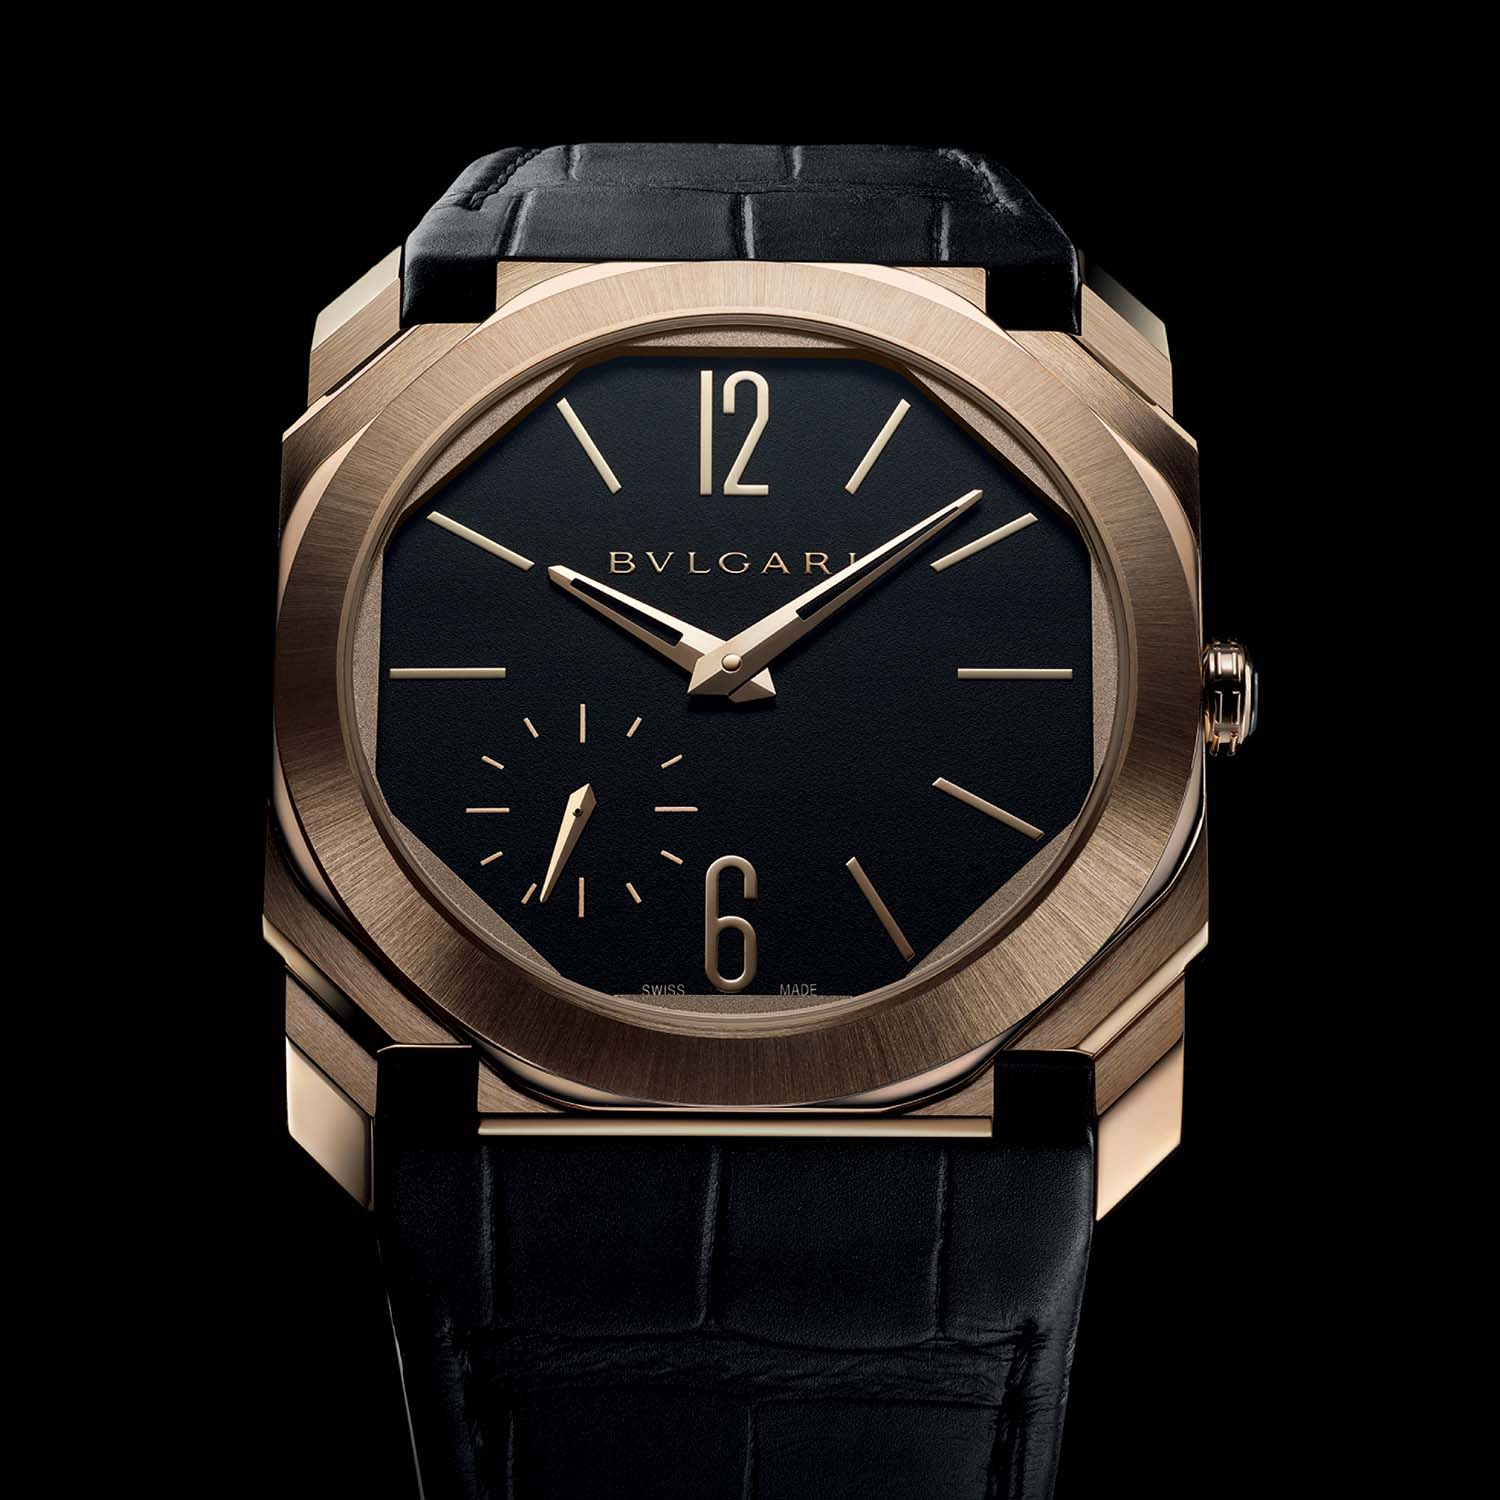 Bvlgari Octo Finissimo Automatic Satin-Polished 2020